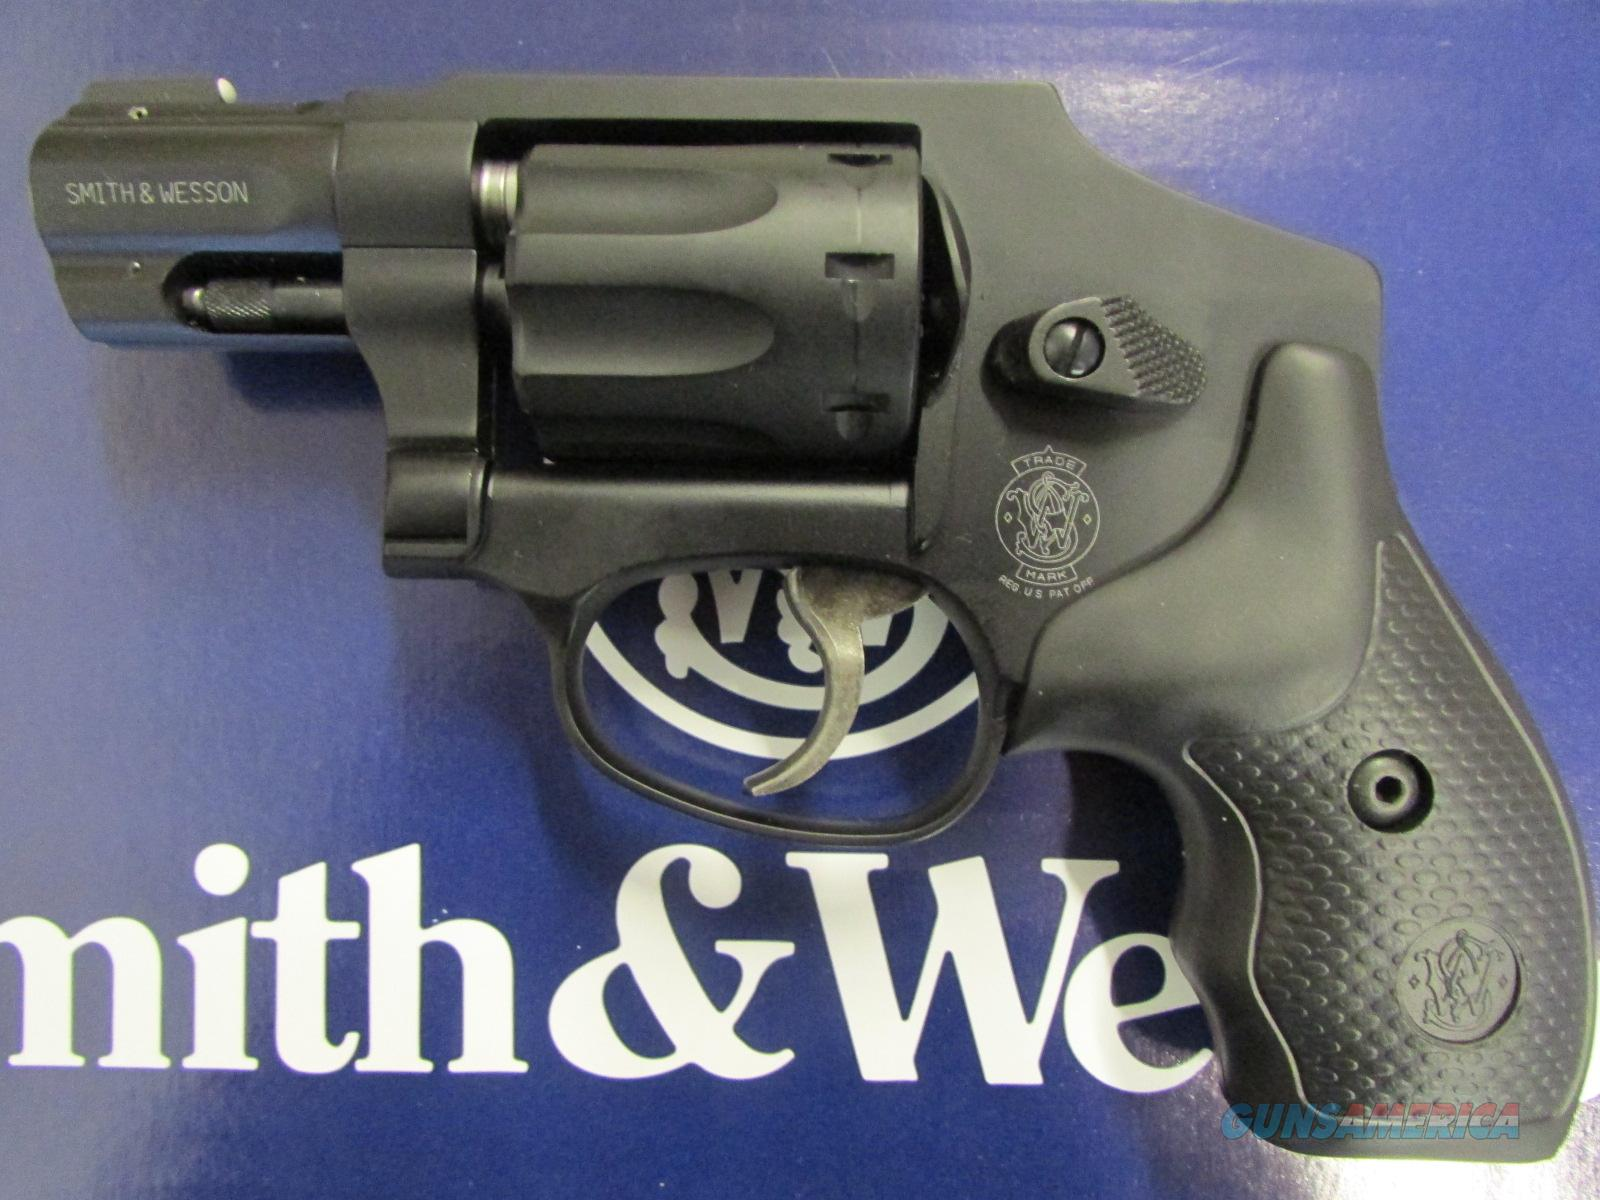 Smith & Wesson AirLite Revolver wallpapers, Weapons, HQ